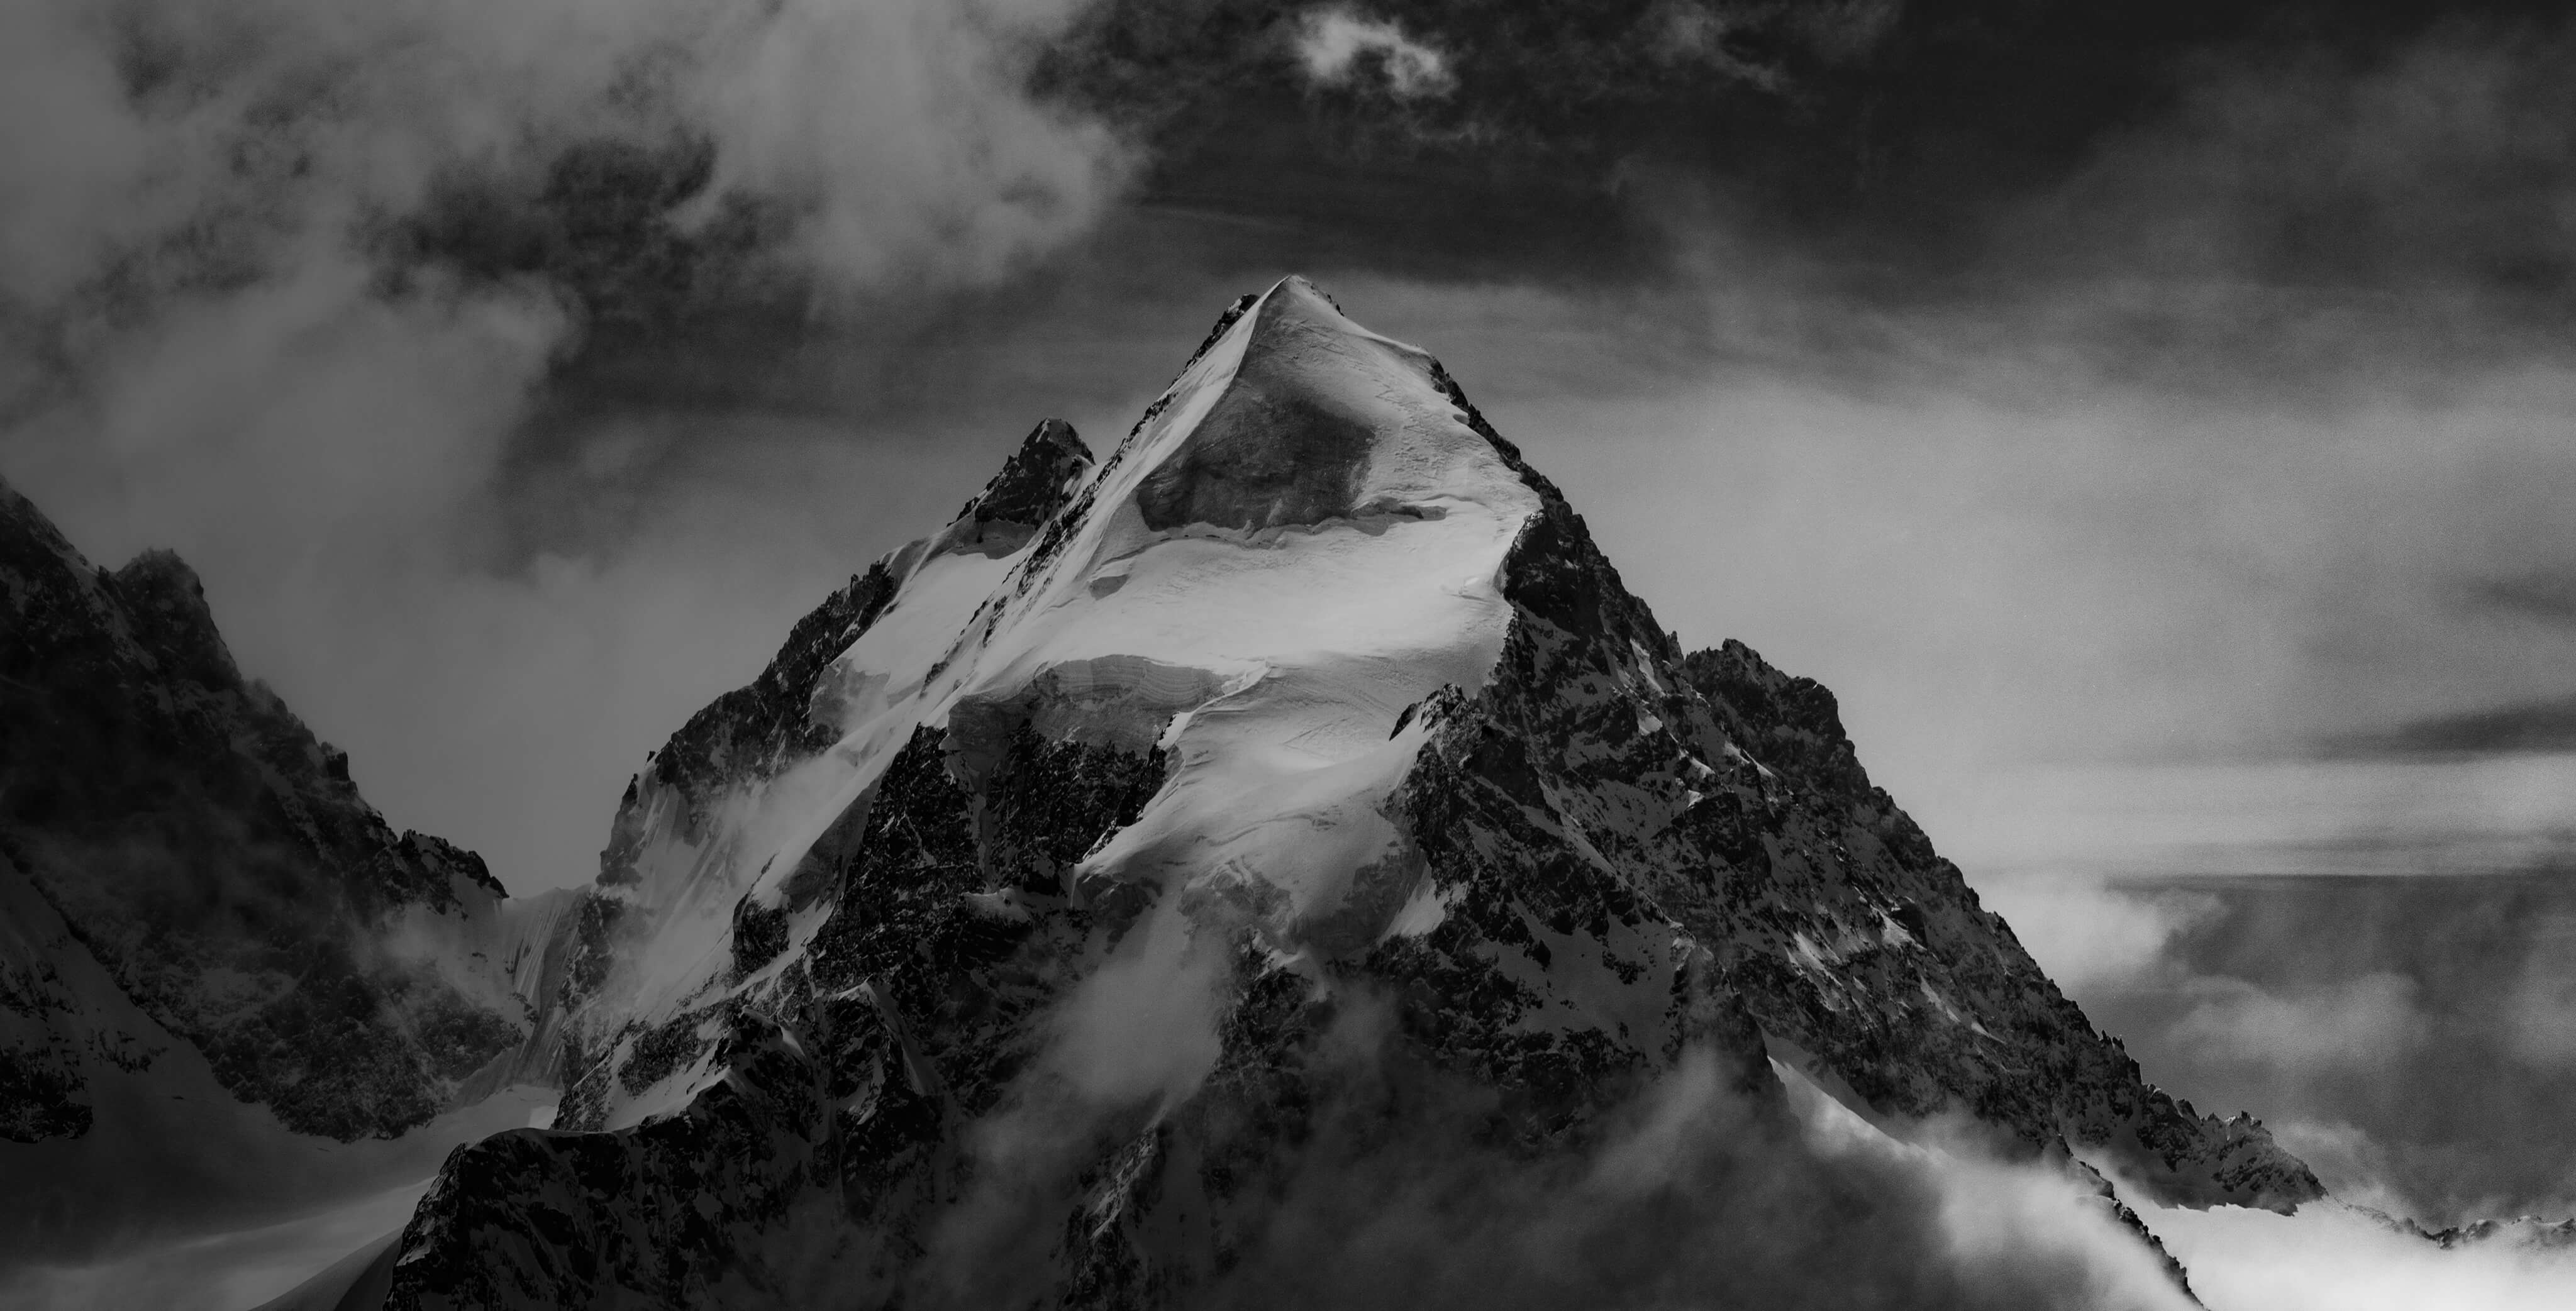 black and white background showing an alpine peak.